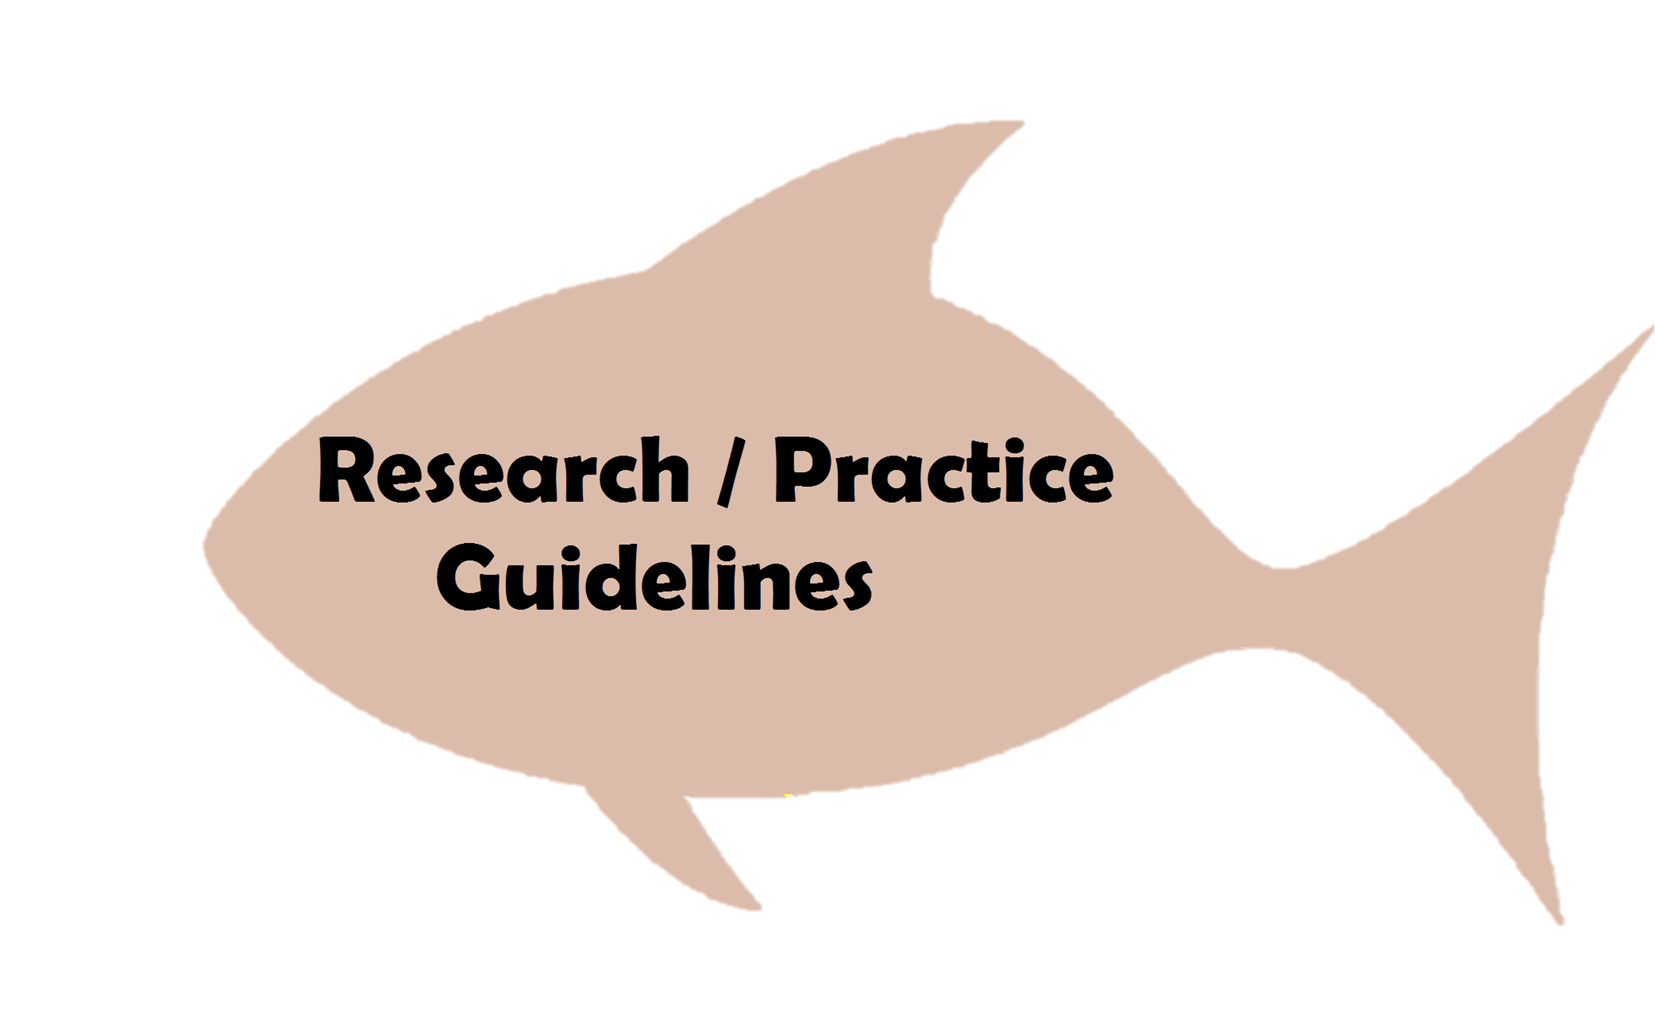 Research and Practice Guidelines